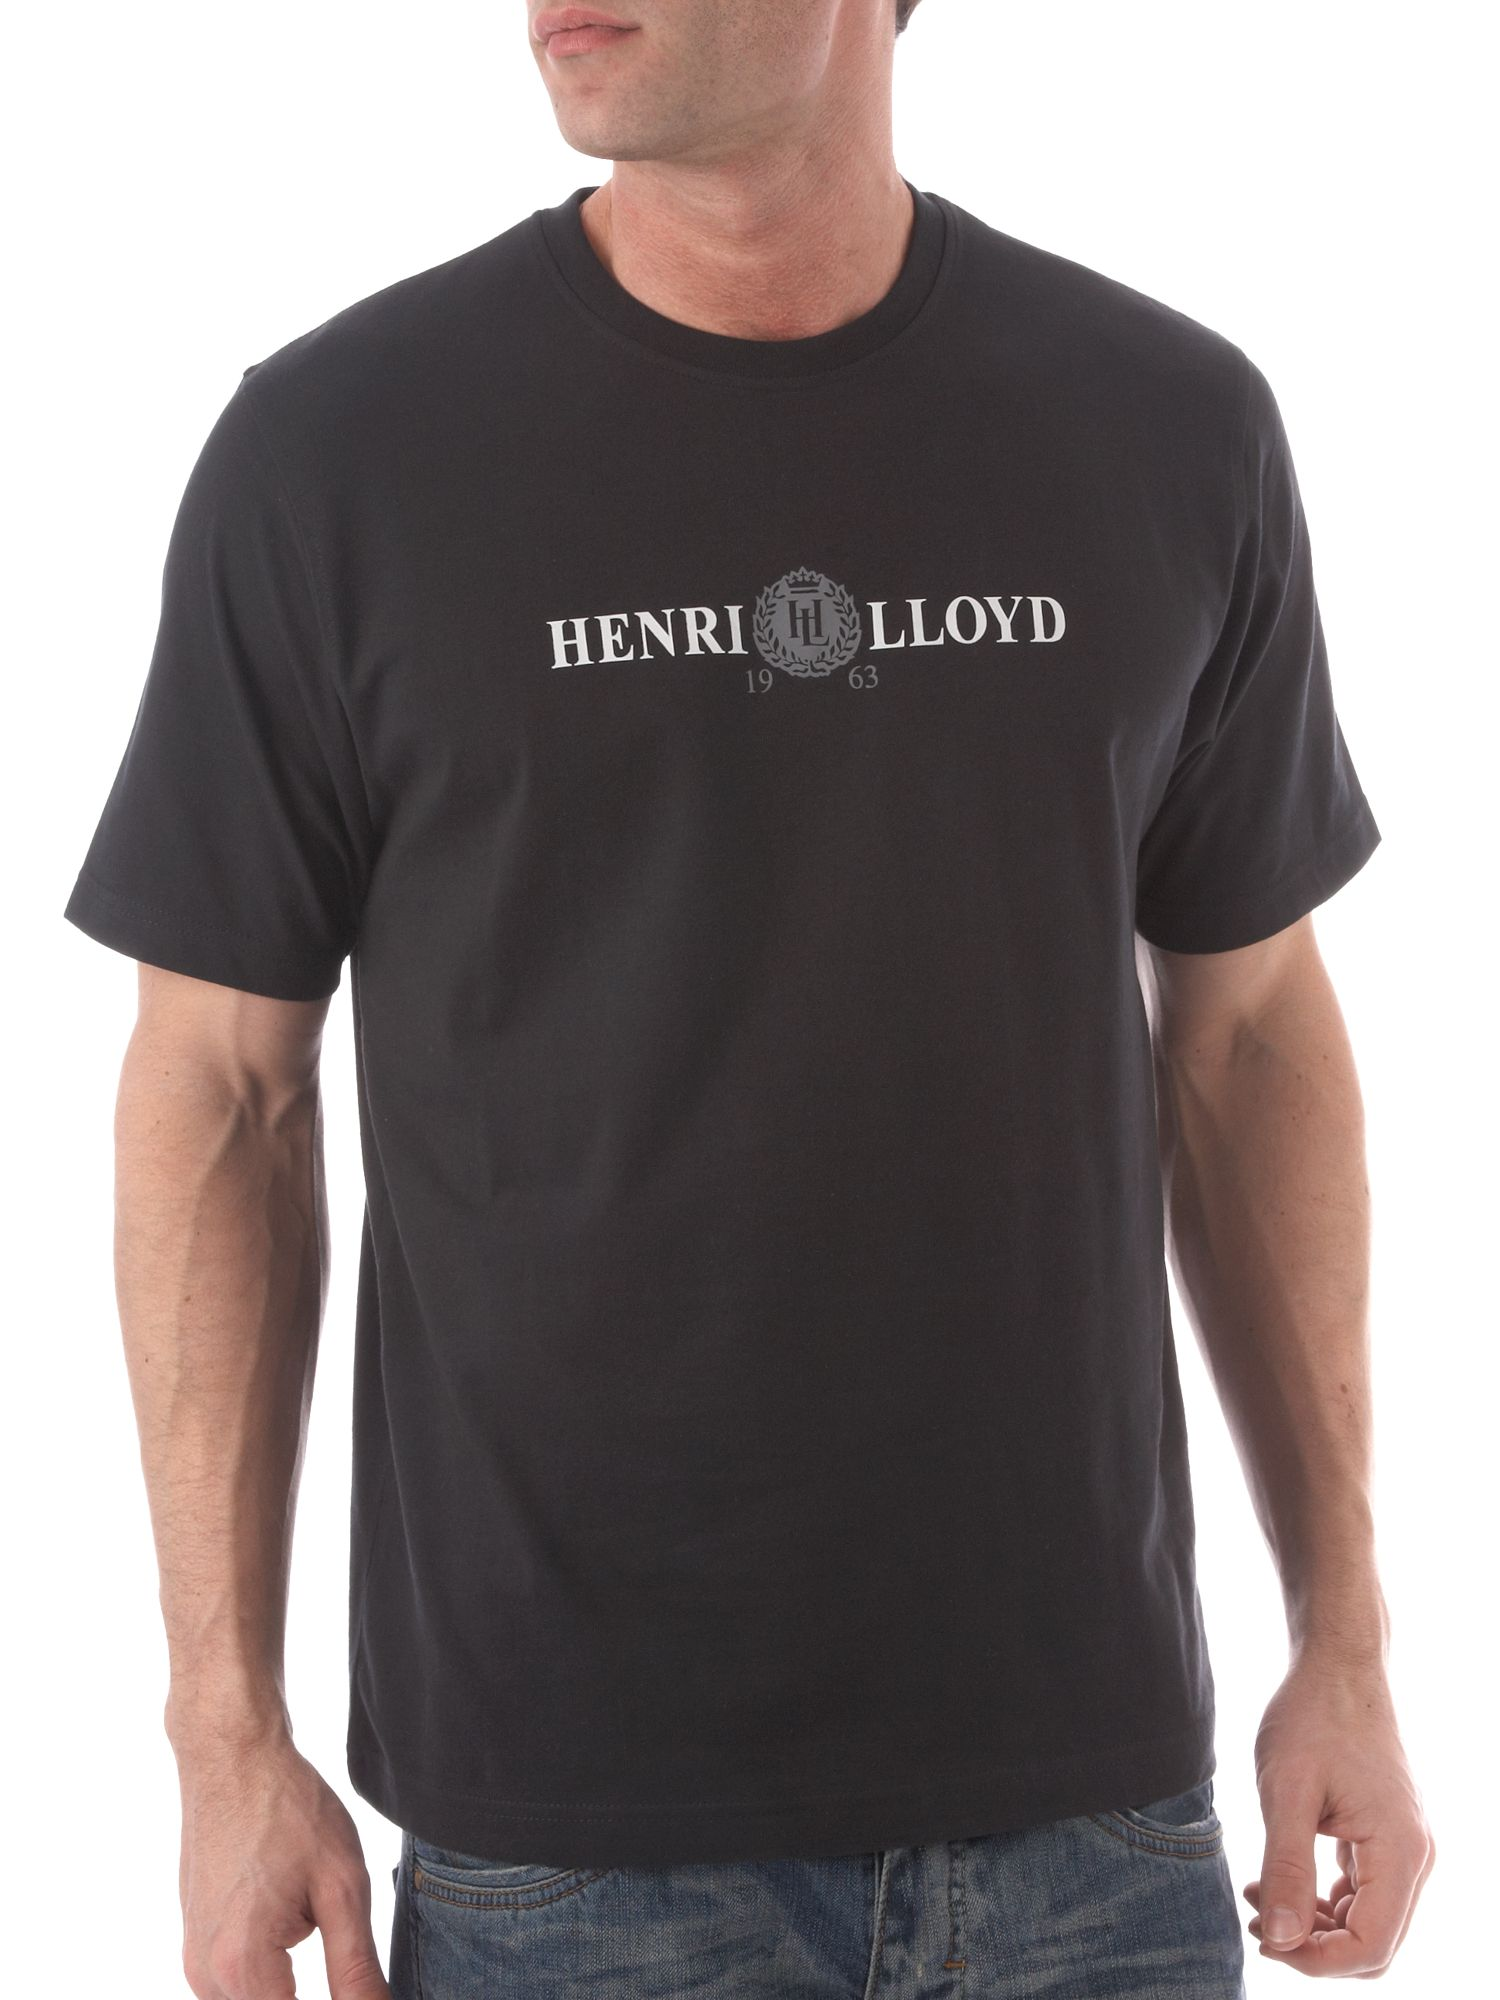 Henri Lloyd Mens casual Derby print crew neck T-shirt product image